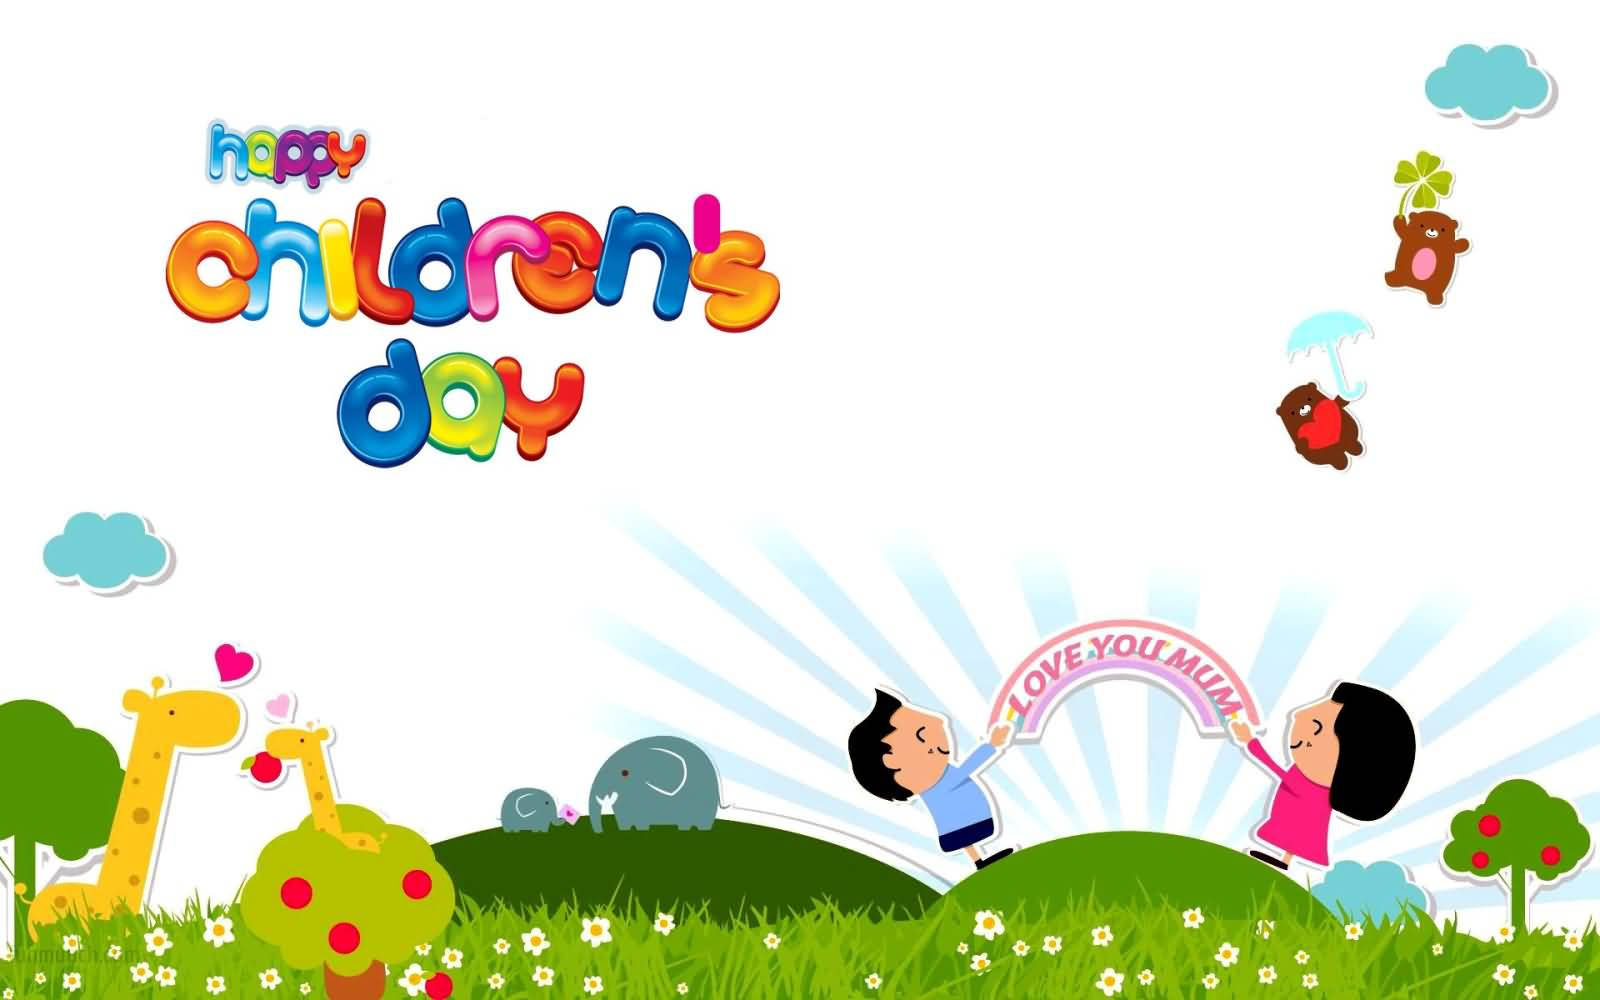 best happy children day wish pictures and photos happy children s day playing kids illustration